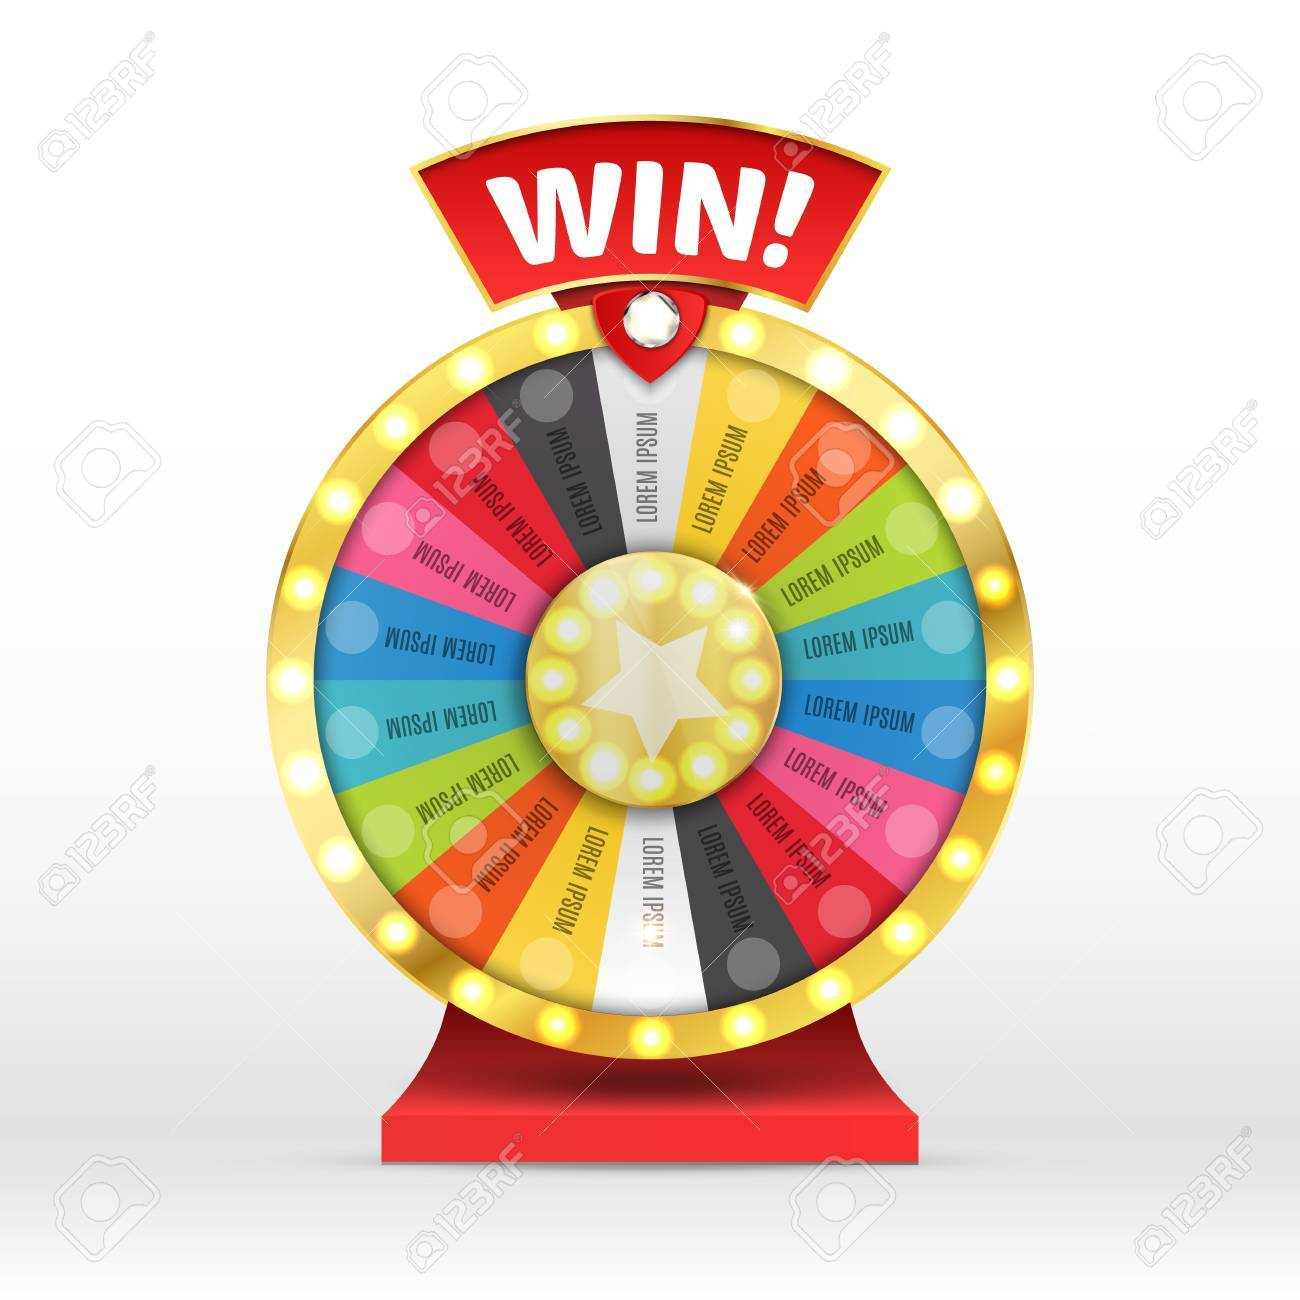 Colorful wheel of luck or fortune infographic. Vector illustration - 69007331